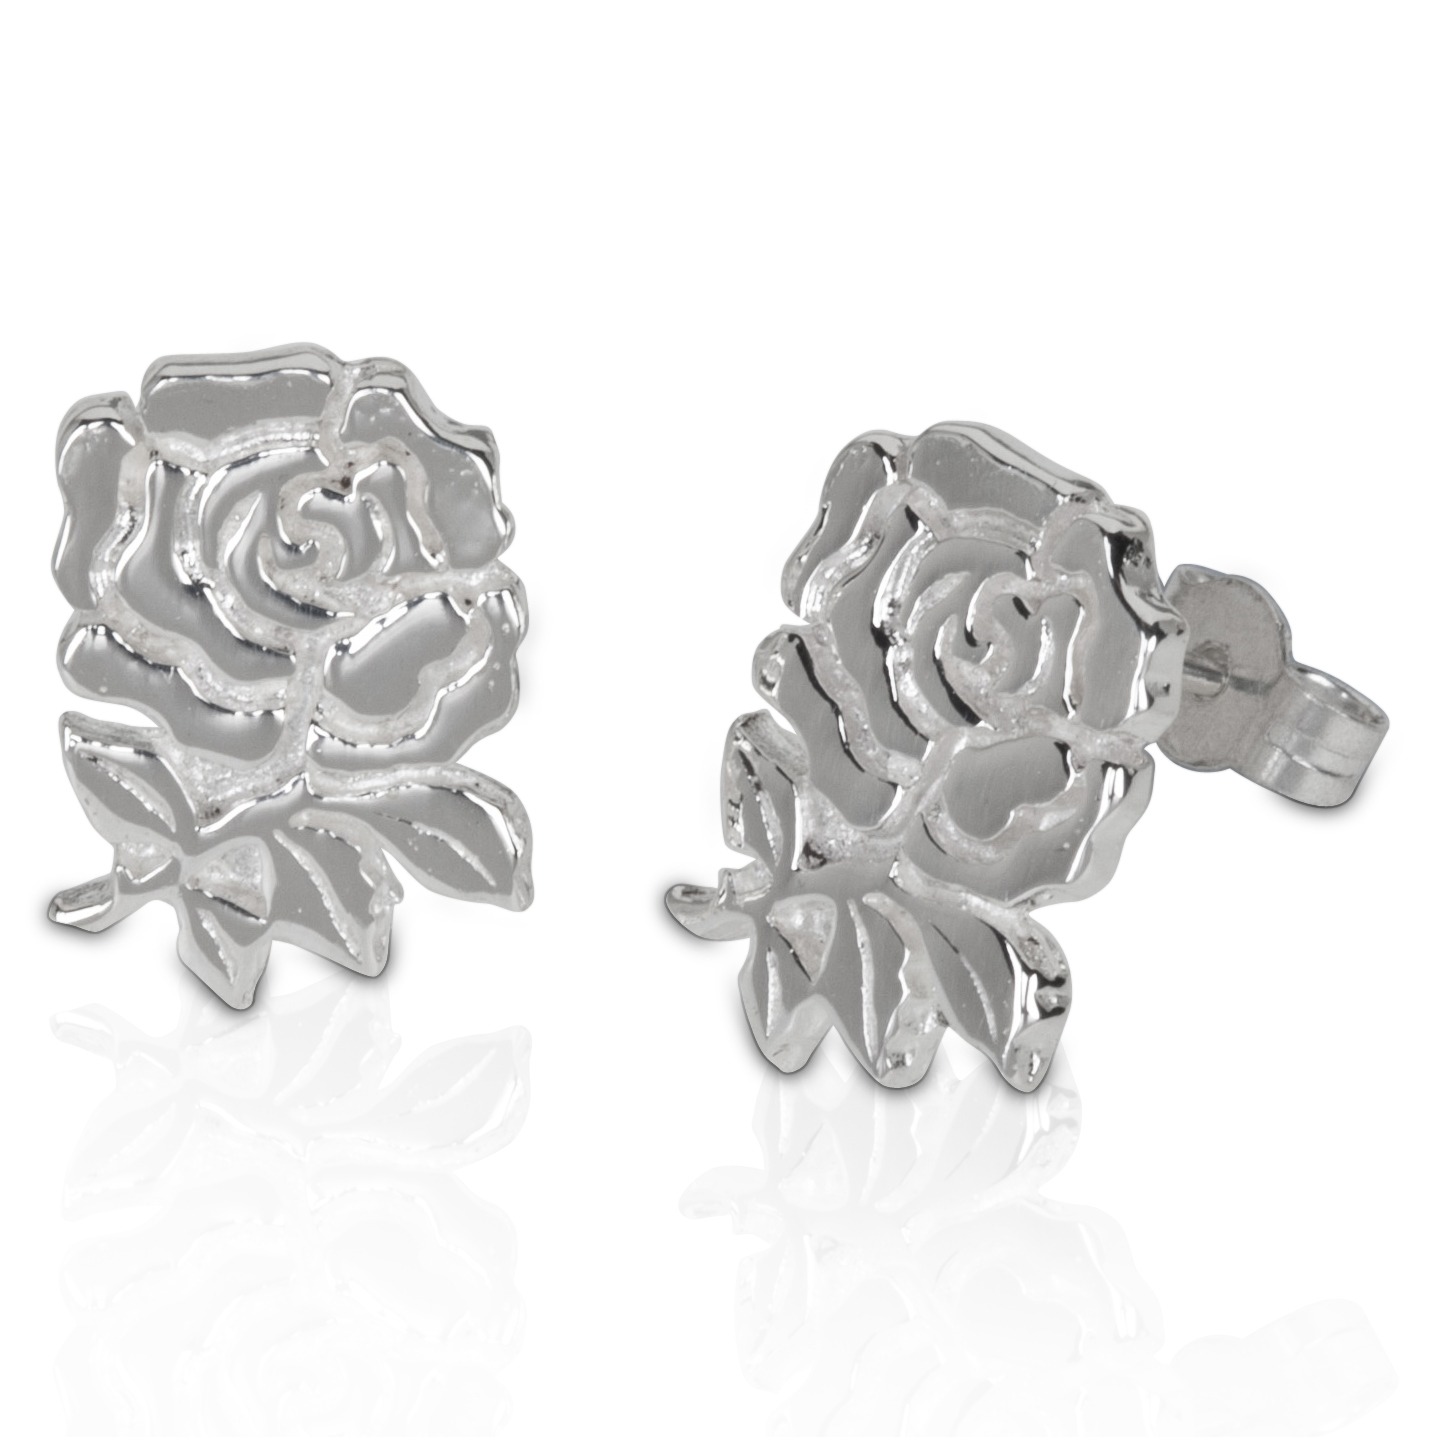 England Rugby Large Rose Stud Sterling Silver Earrings - Pair